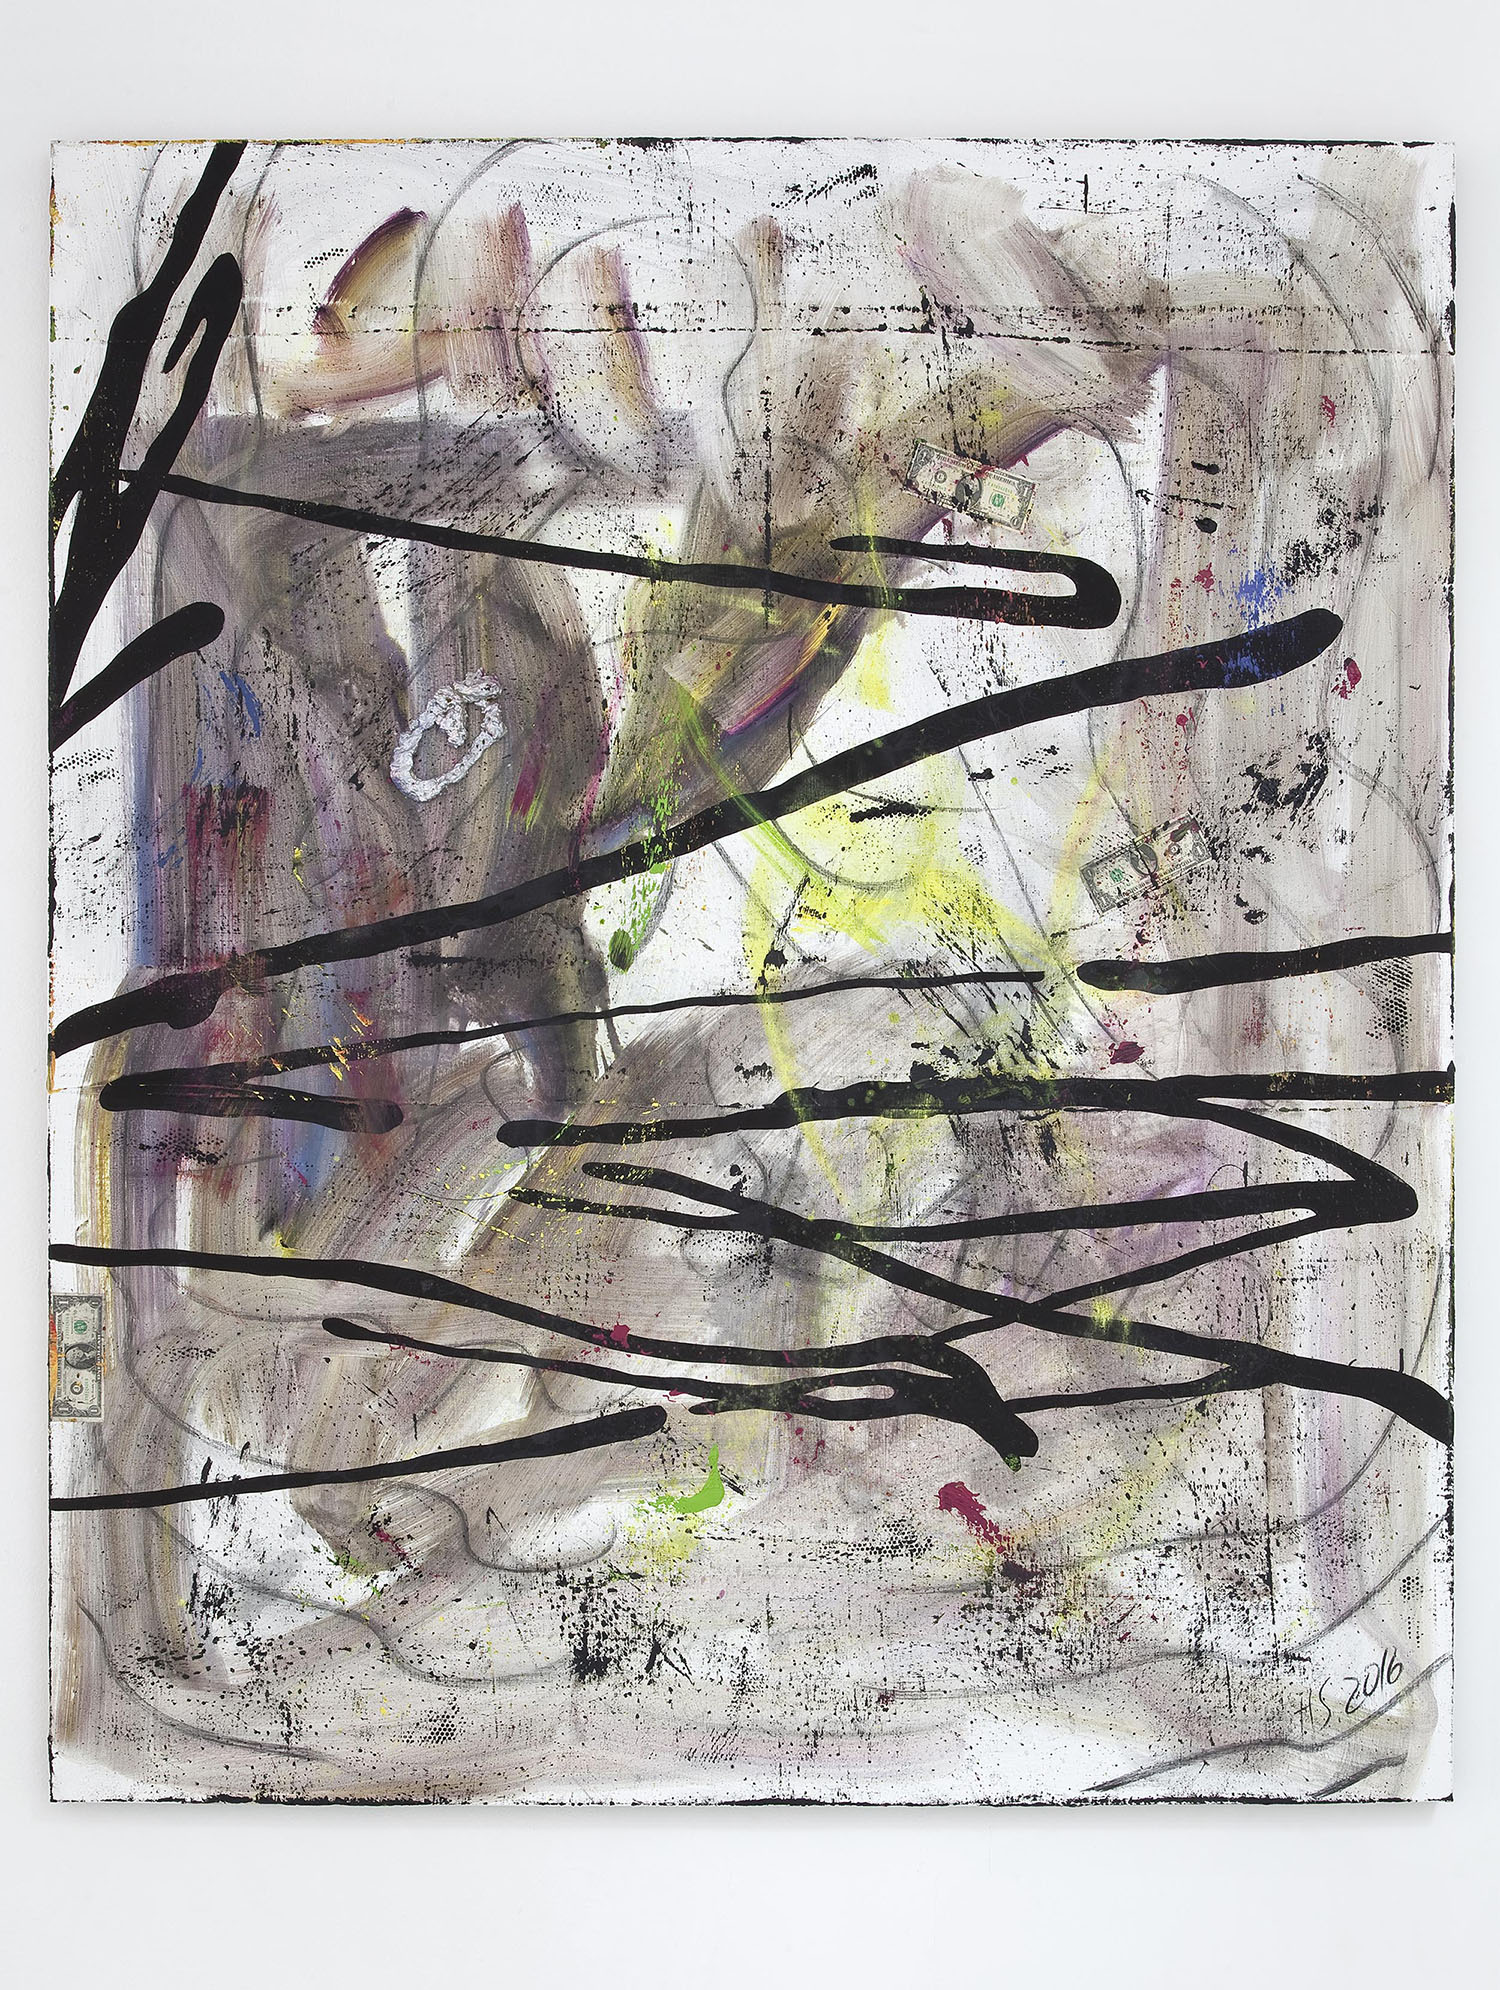 13 - Henning Strassburger Speculative Fiction 2016 oil and foam on canvas 200x140 cm - Courtesy Studiolo Milan copia 2